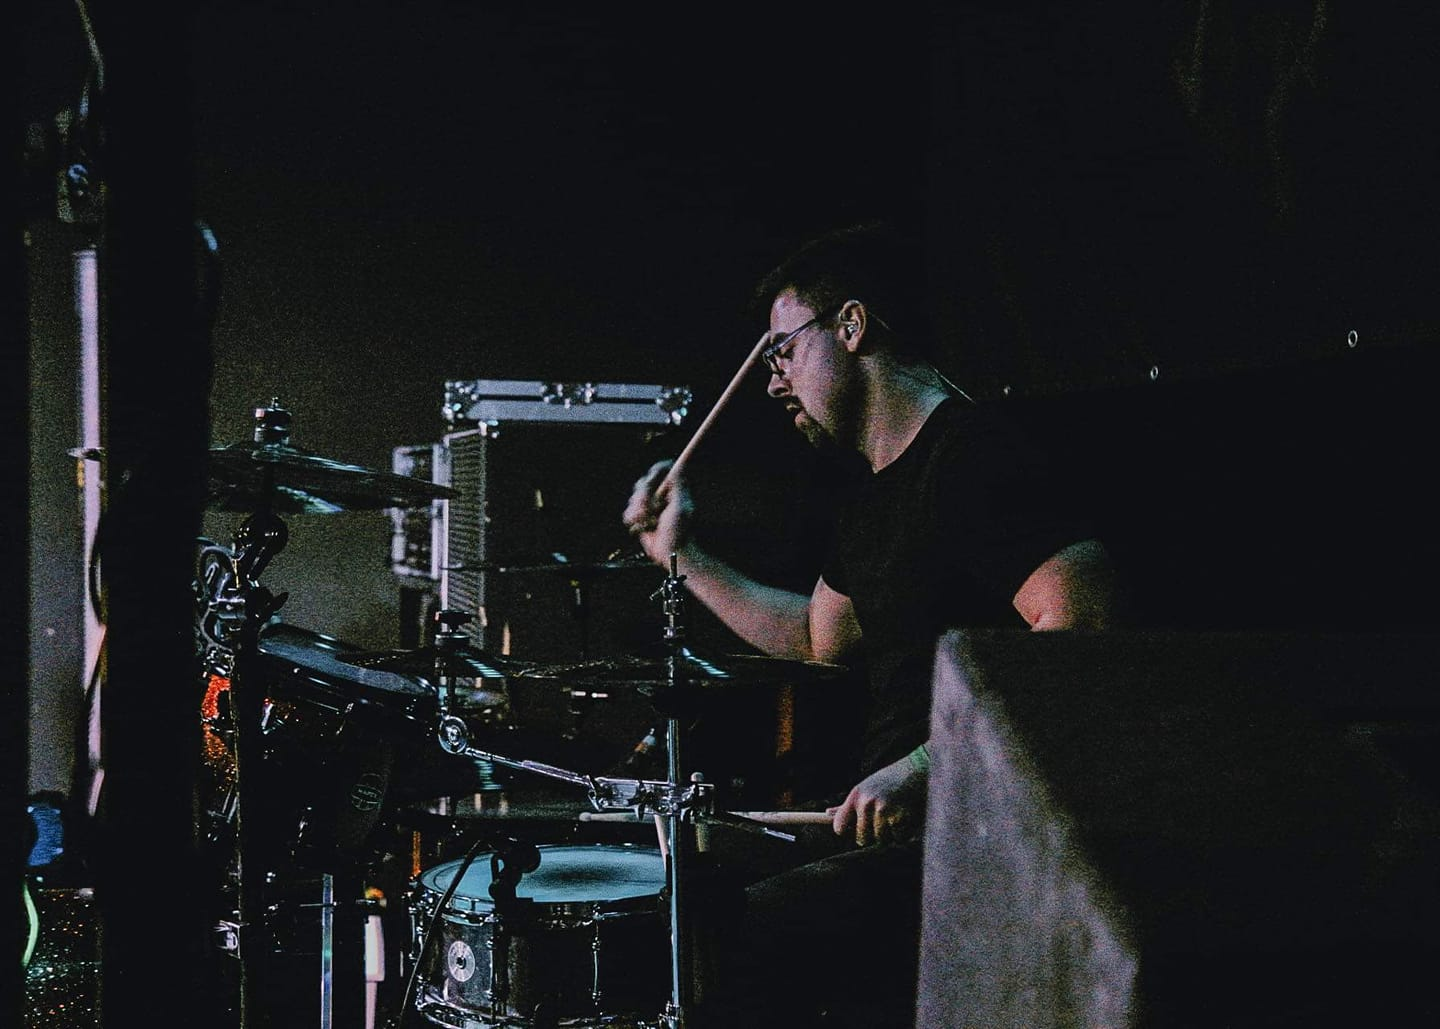 Drummer Devin Radloff poses with Scorpion Percussion drumsticks behind his drumkit